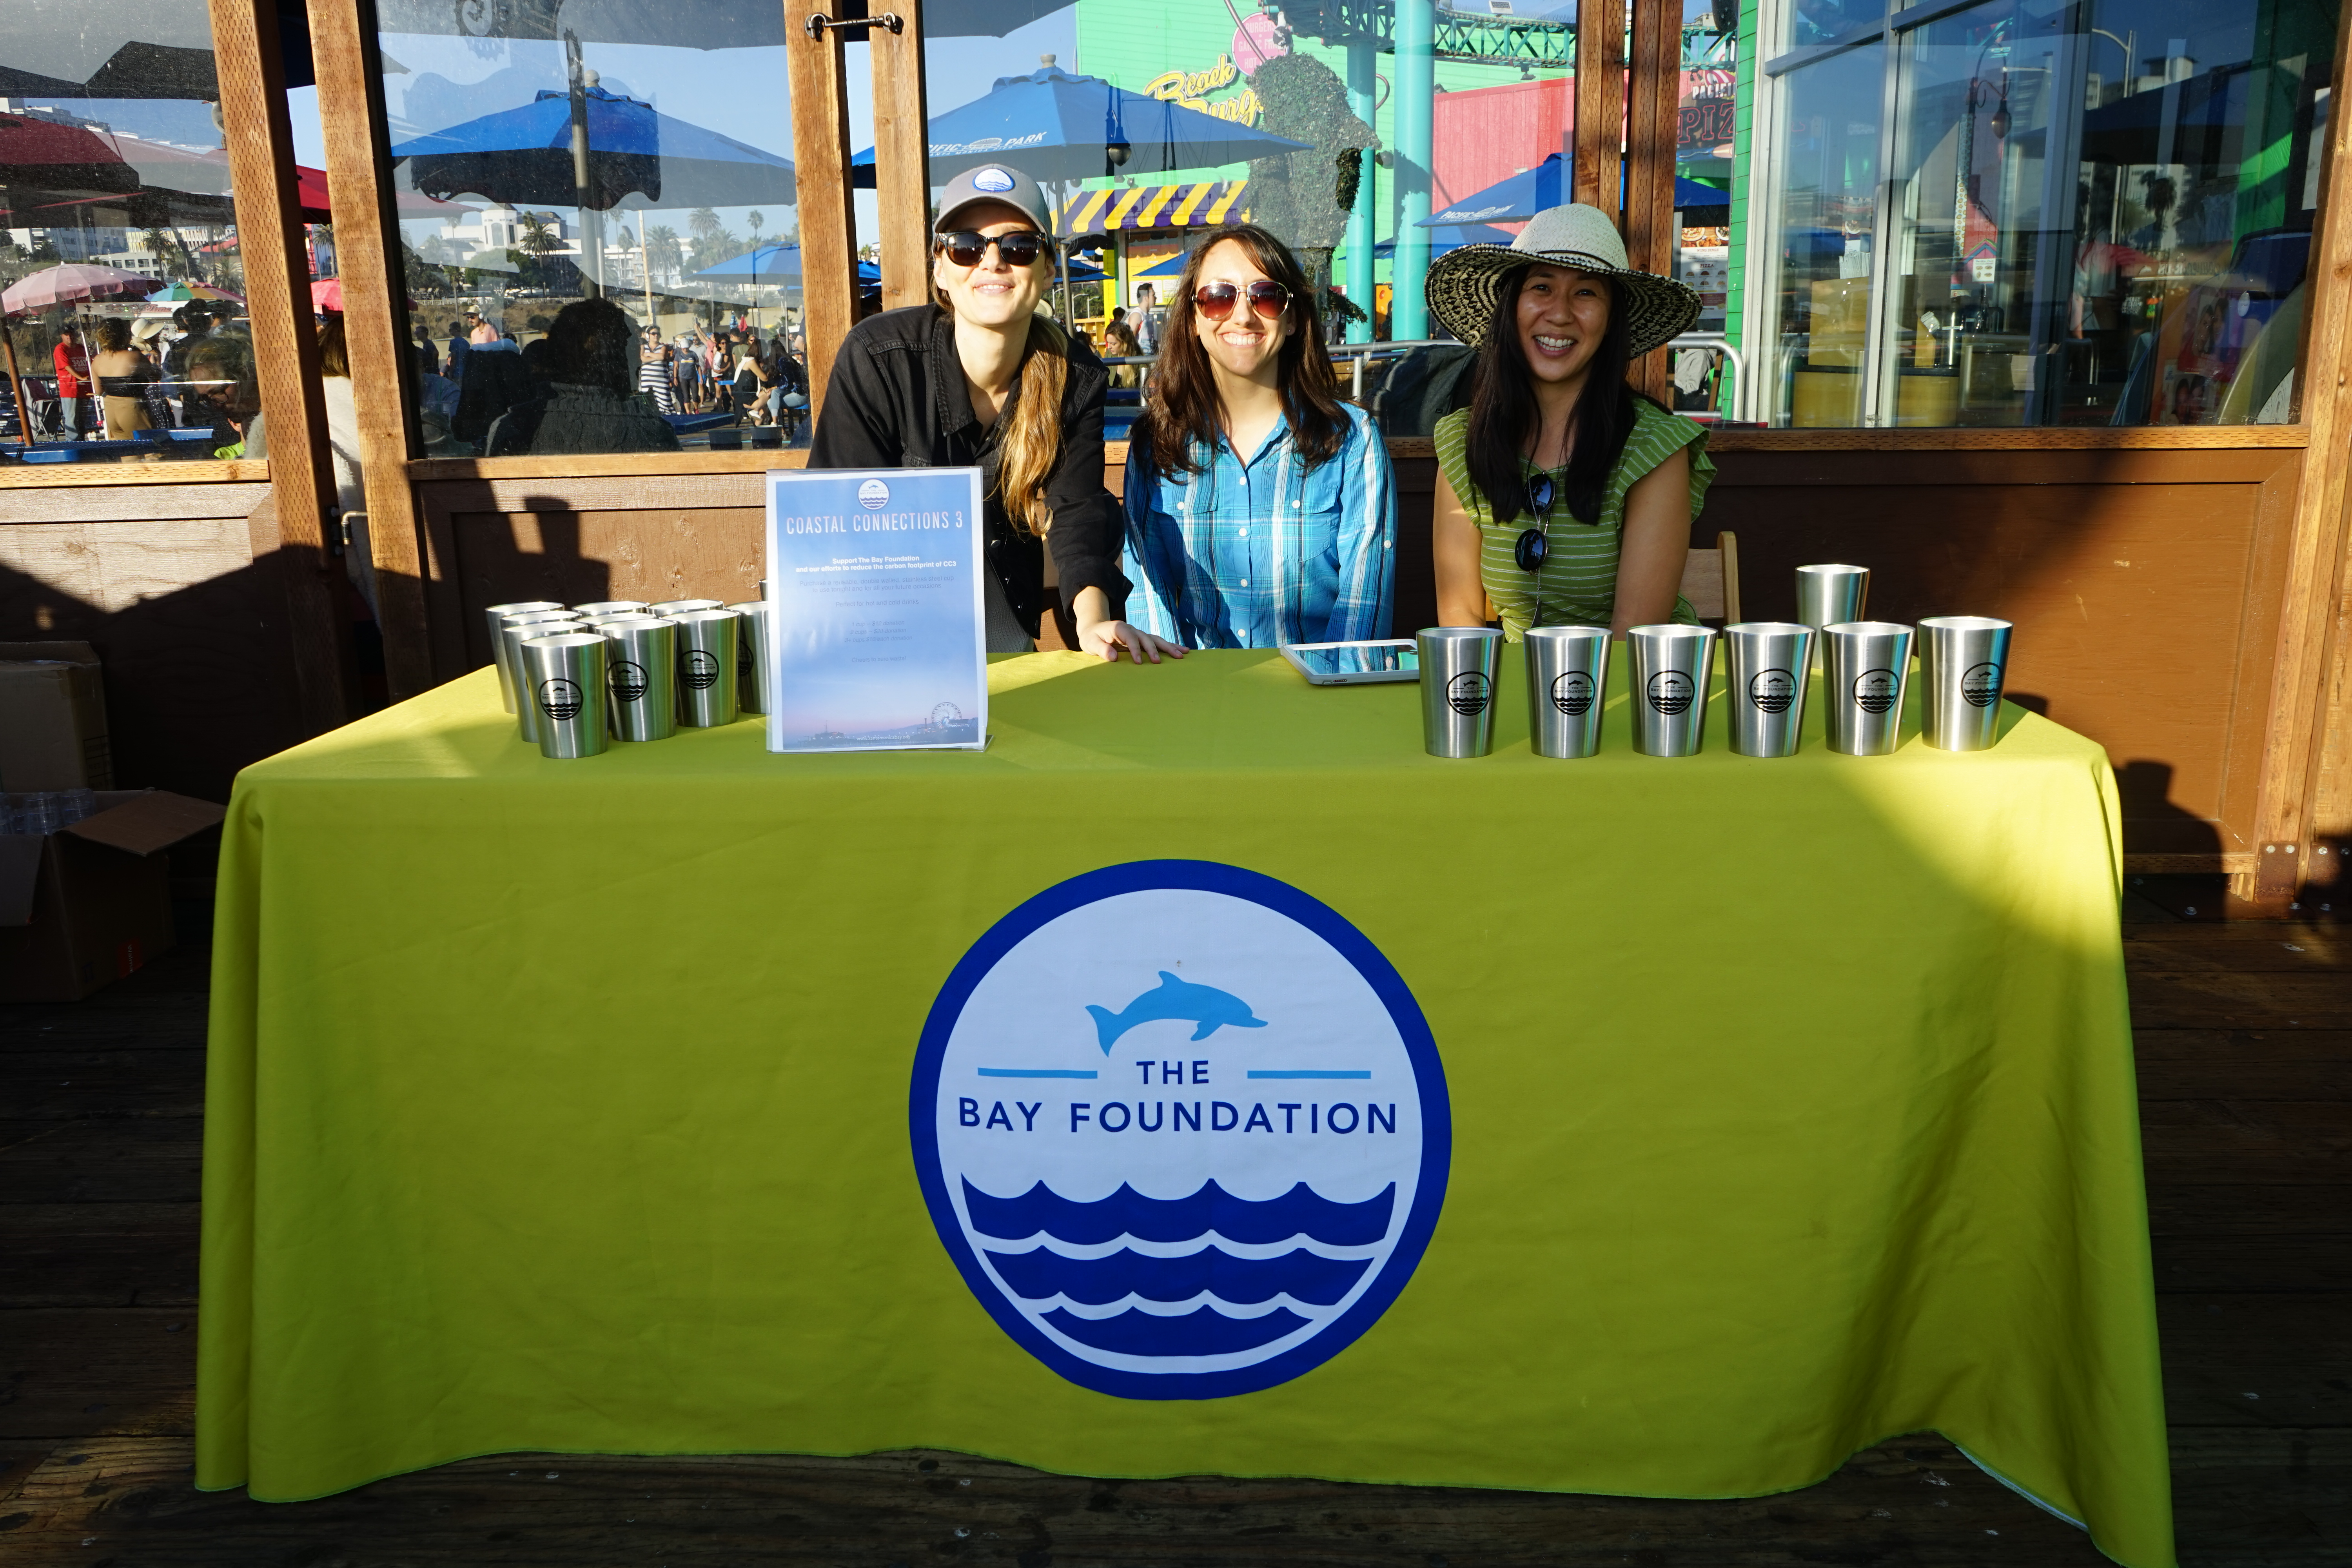 Georgia Tunioli, Vicki Gambale and Grace Lee of The Bay Foundation's Clean Bay Certified Program